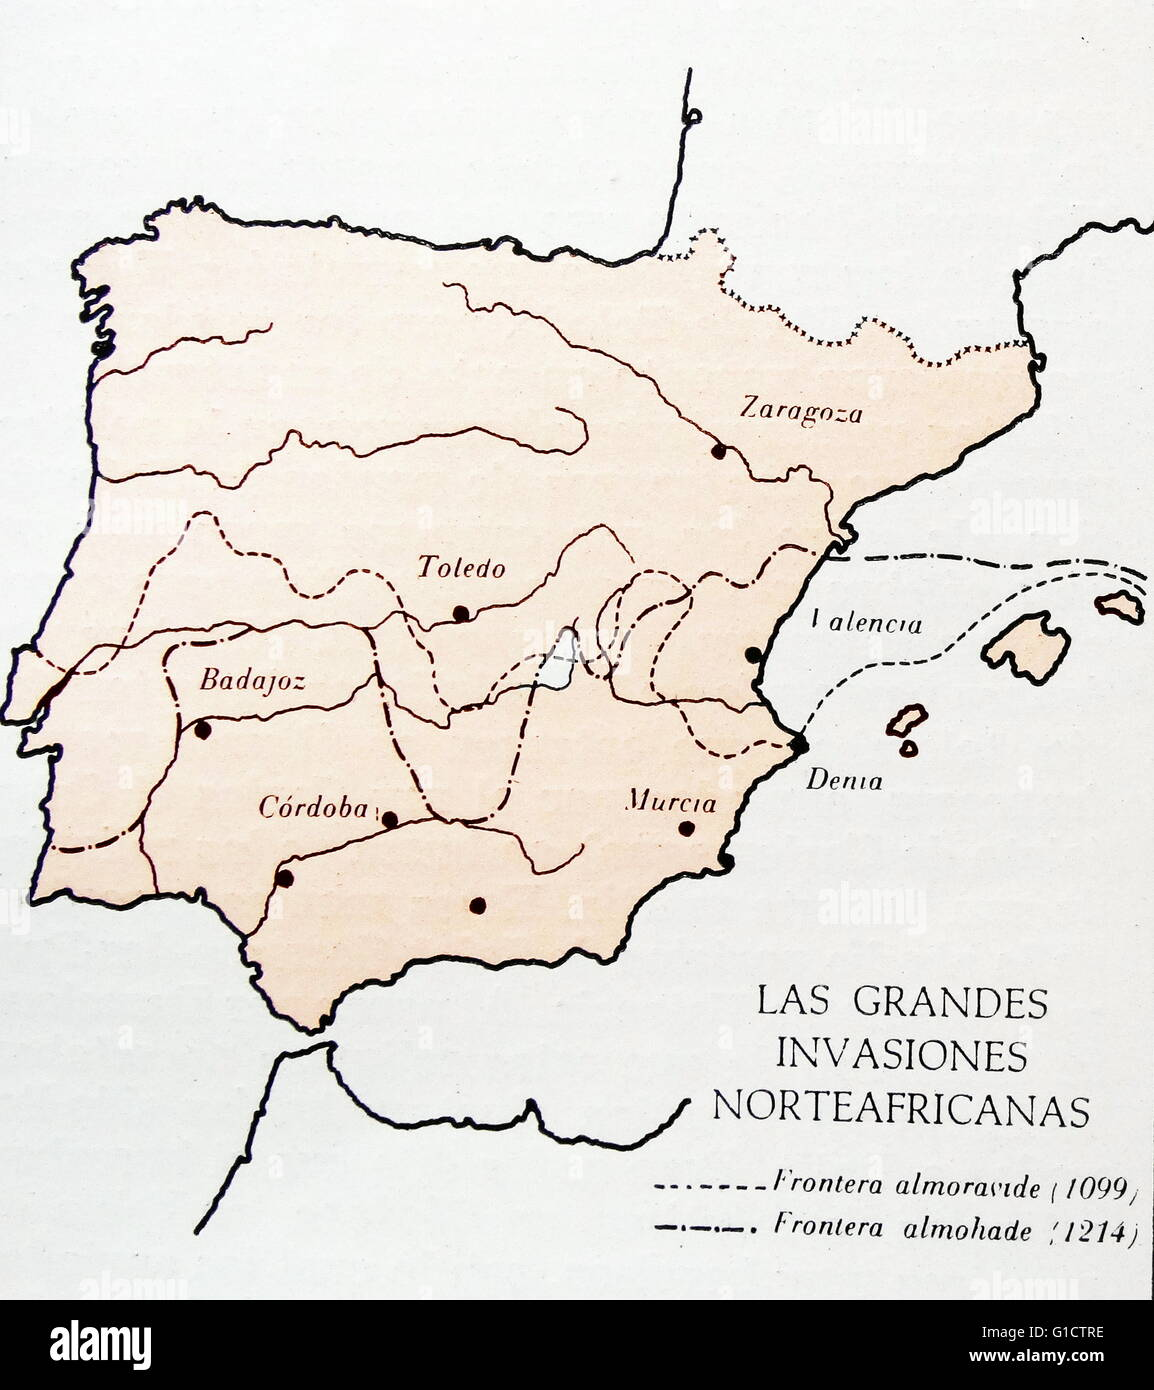 Map showing moslem invasions of Spain between 1099-1214 AD - Stock Image